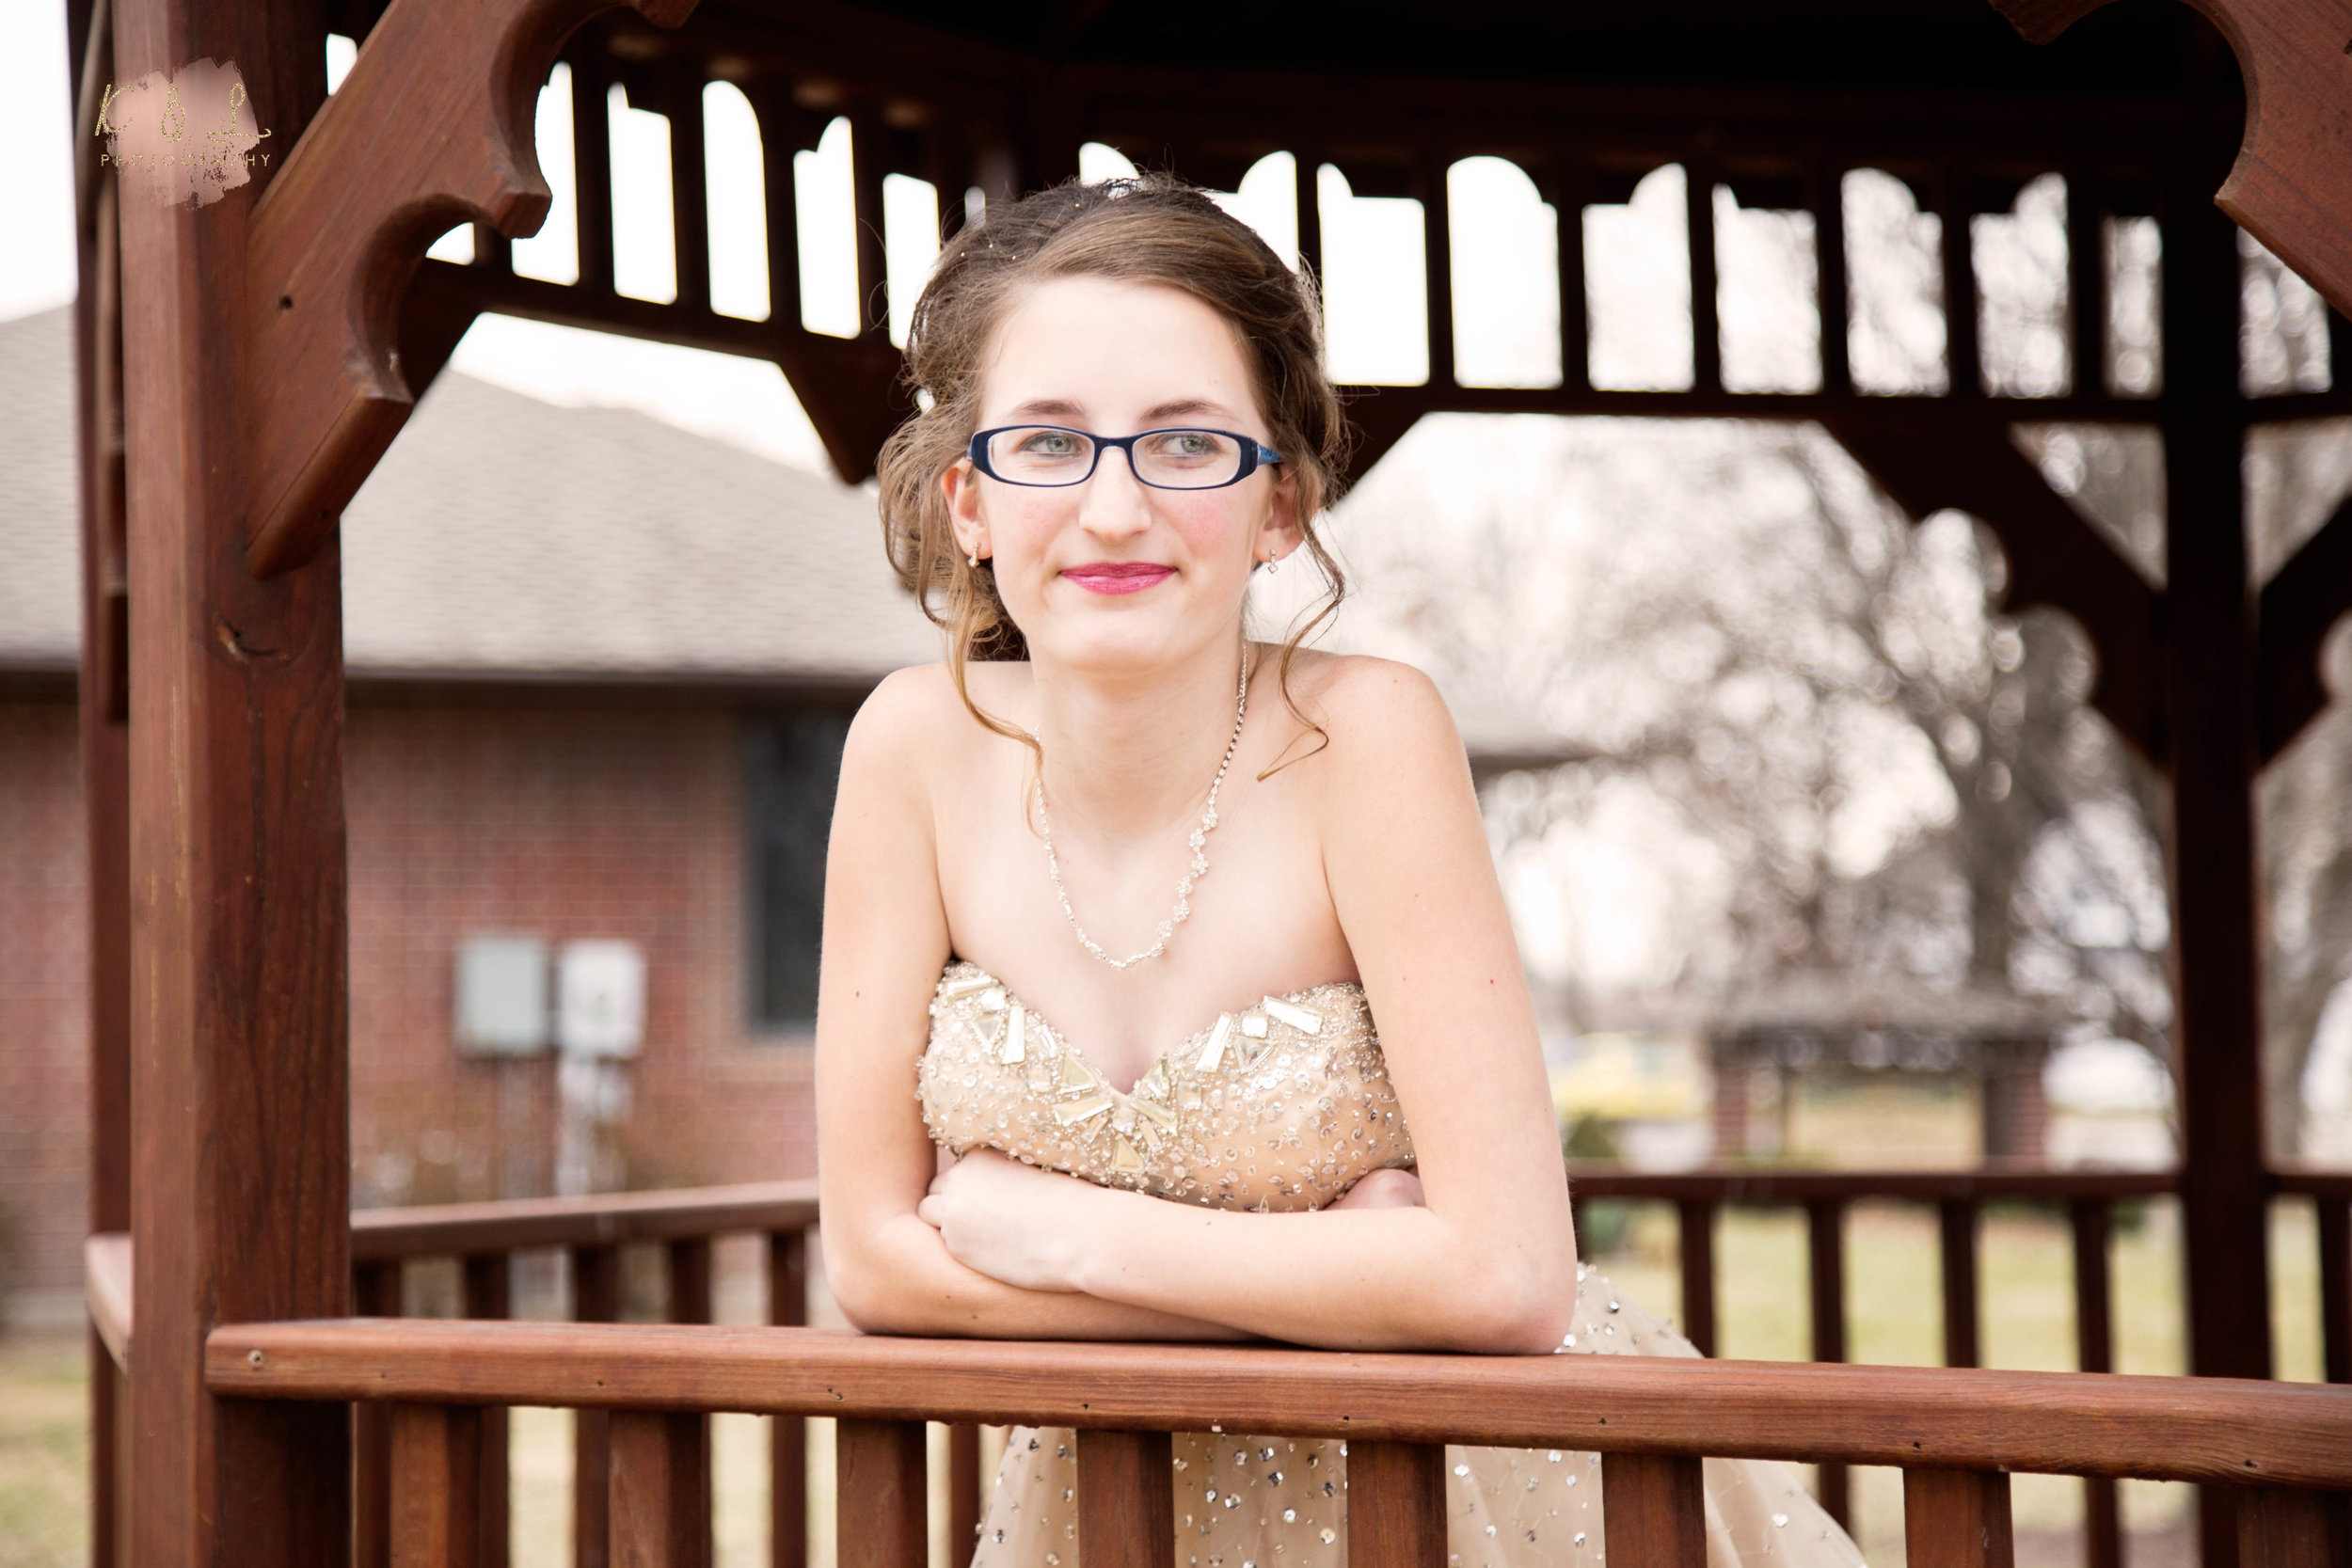 Madison_Winter_Formal_2017-17.jpg